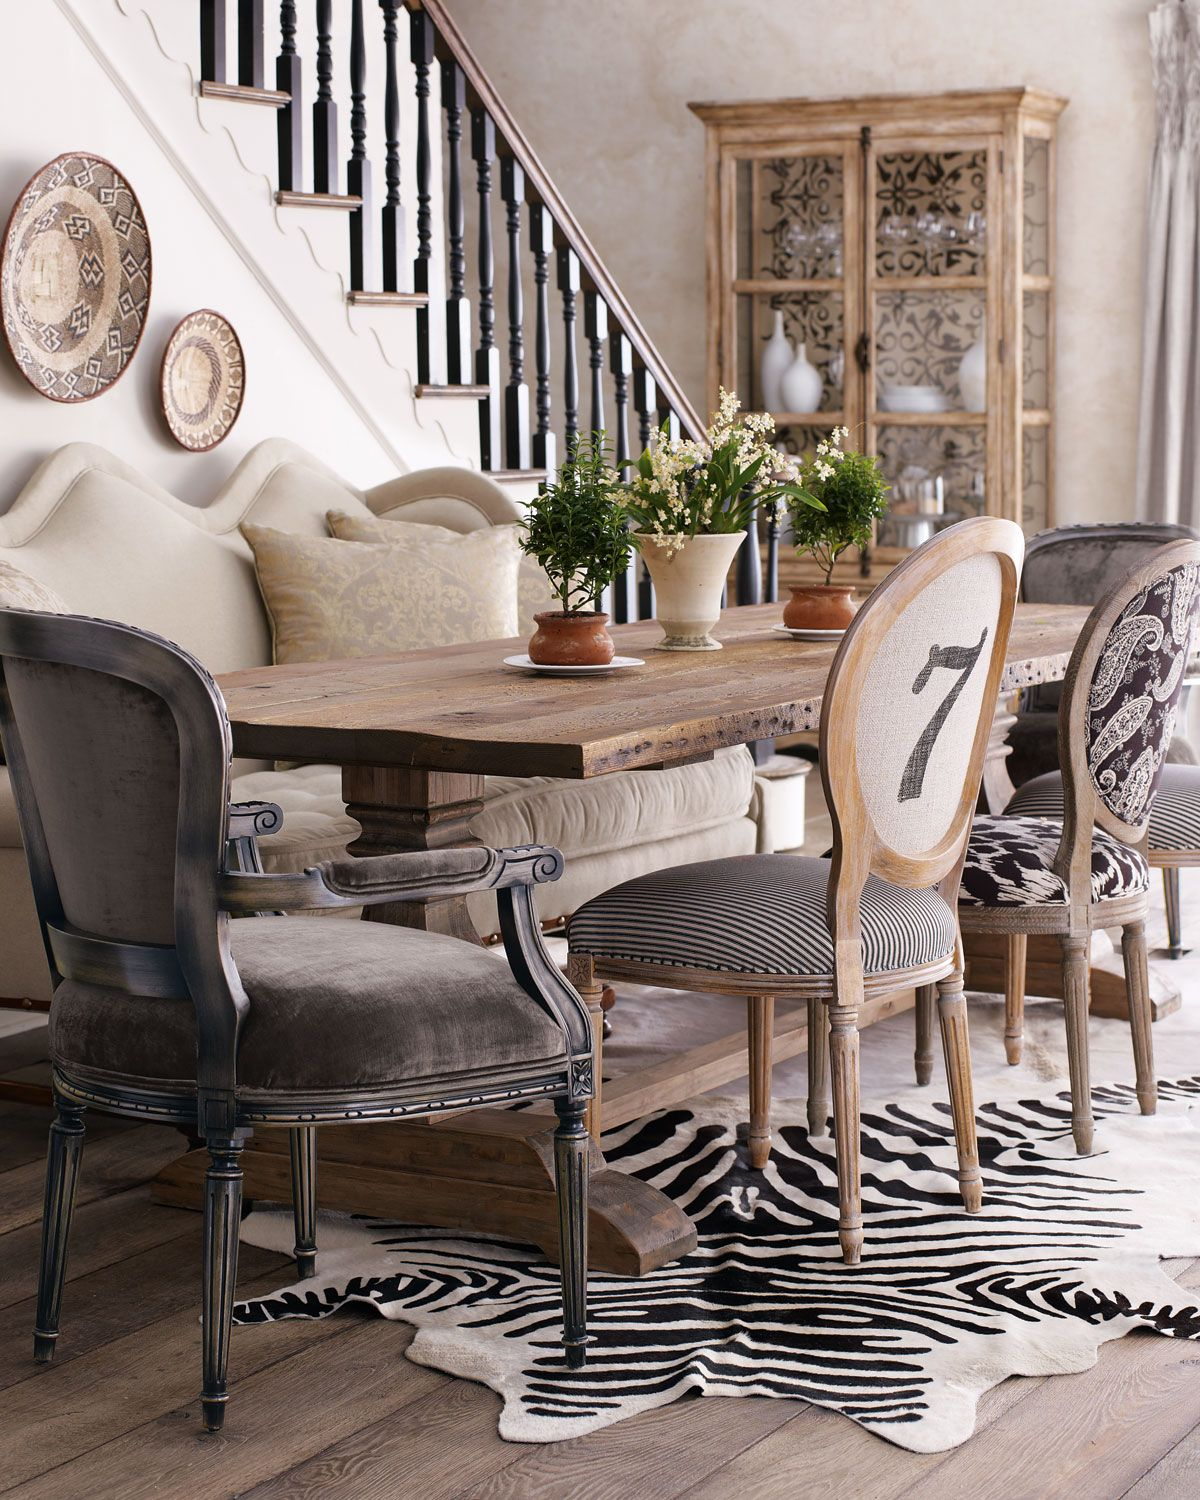 How To Mix Match Dining Chairs Dining Room Trends Mismatched Dining Room Mix Match Dining Chairs